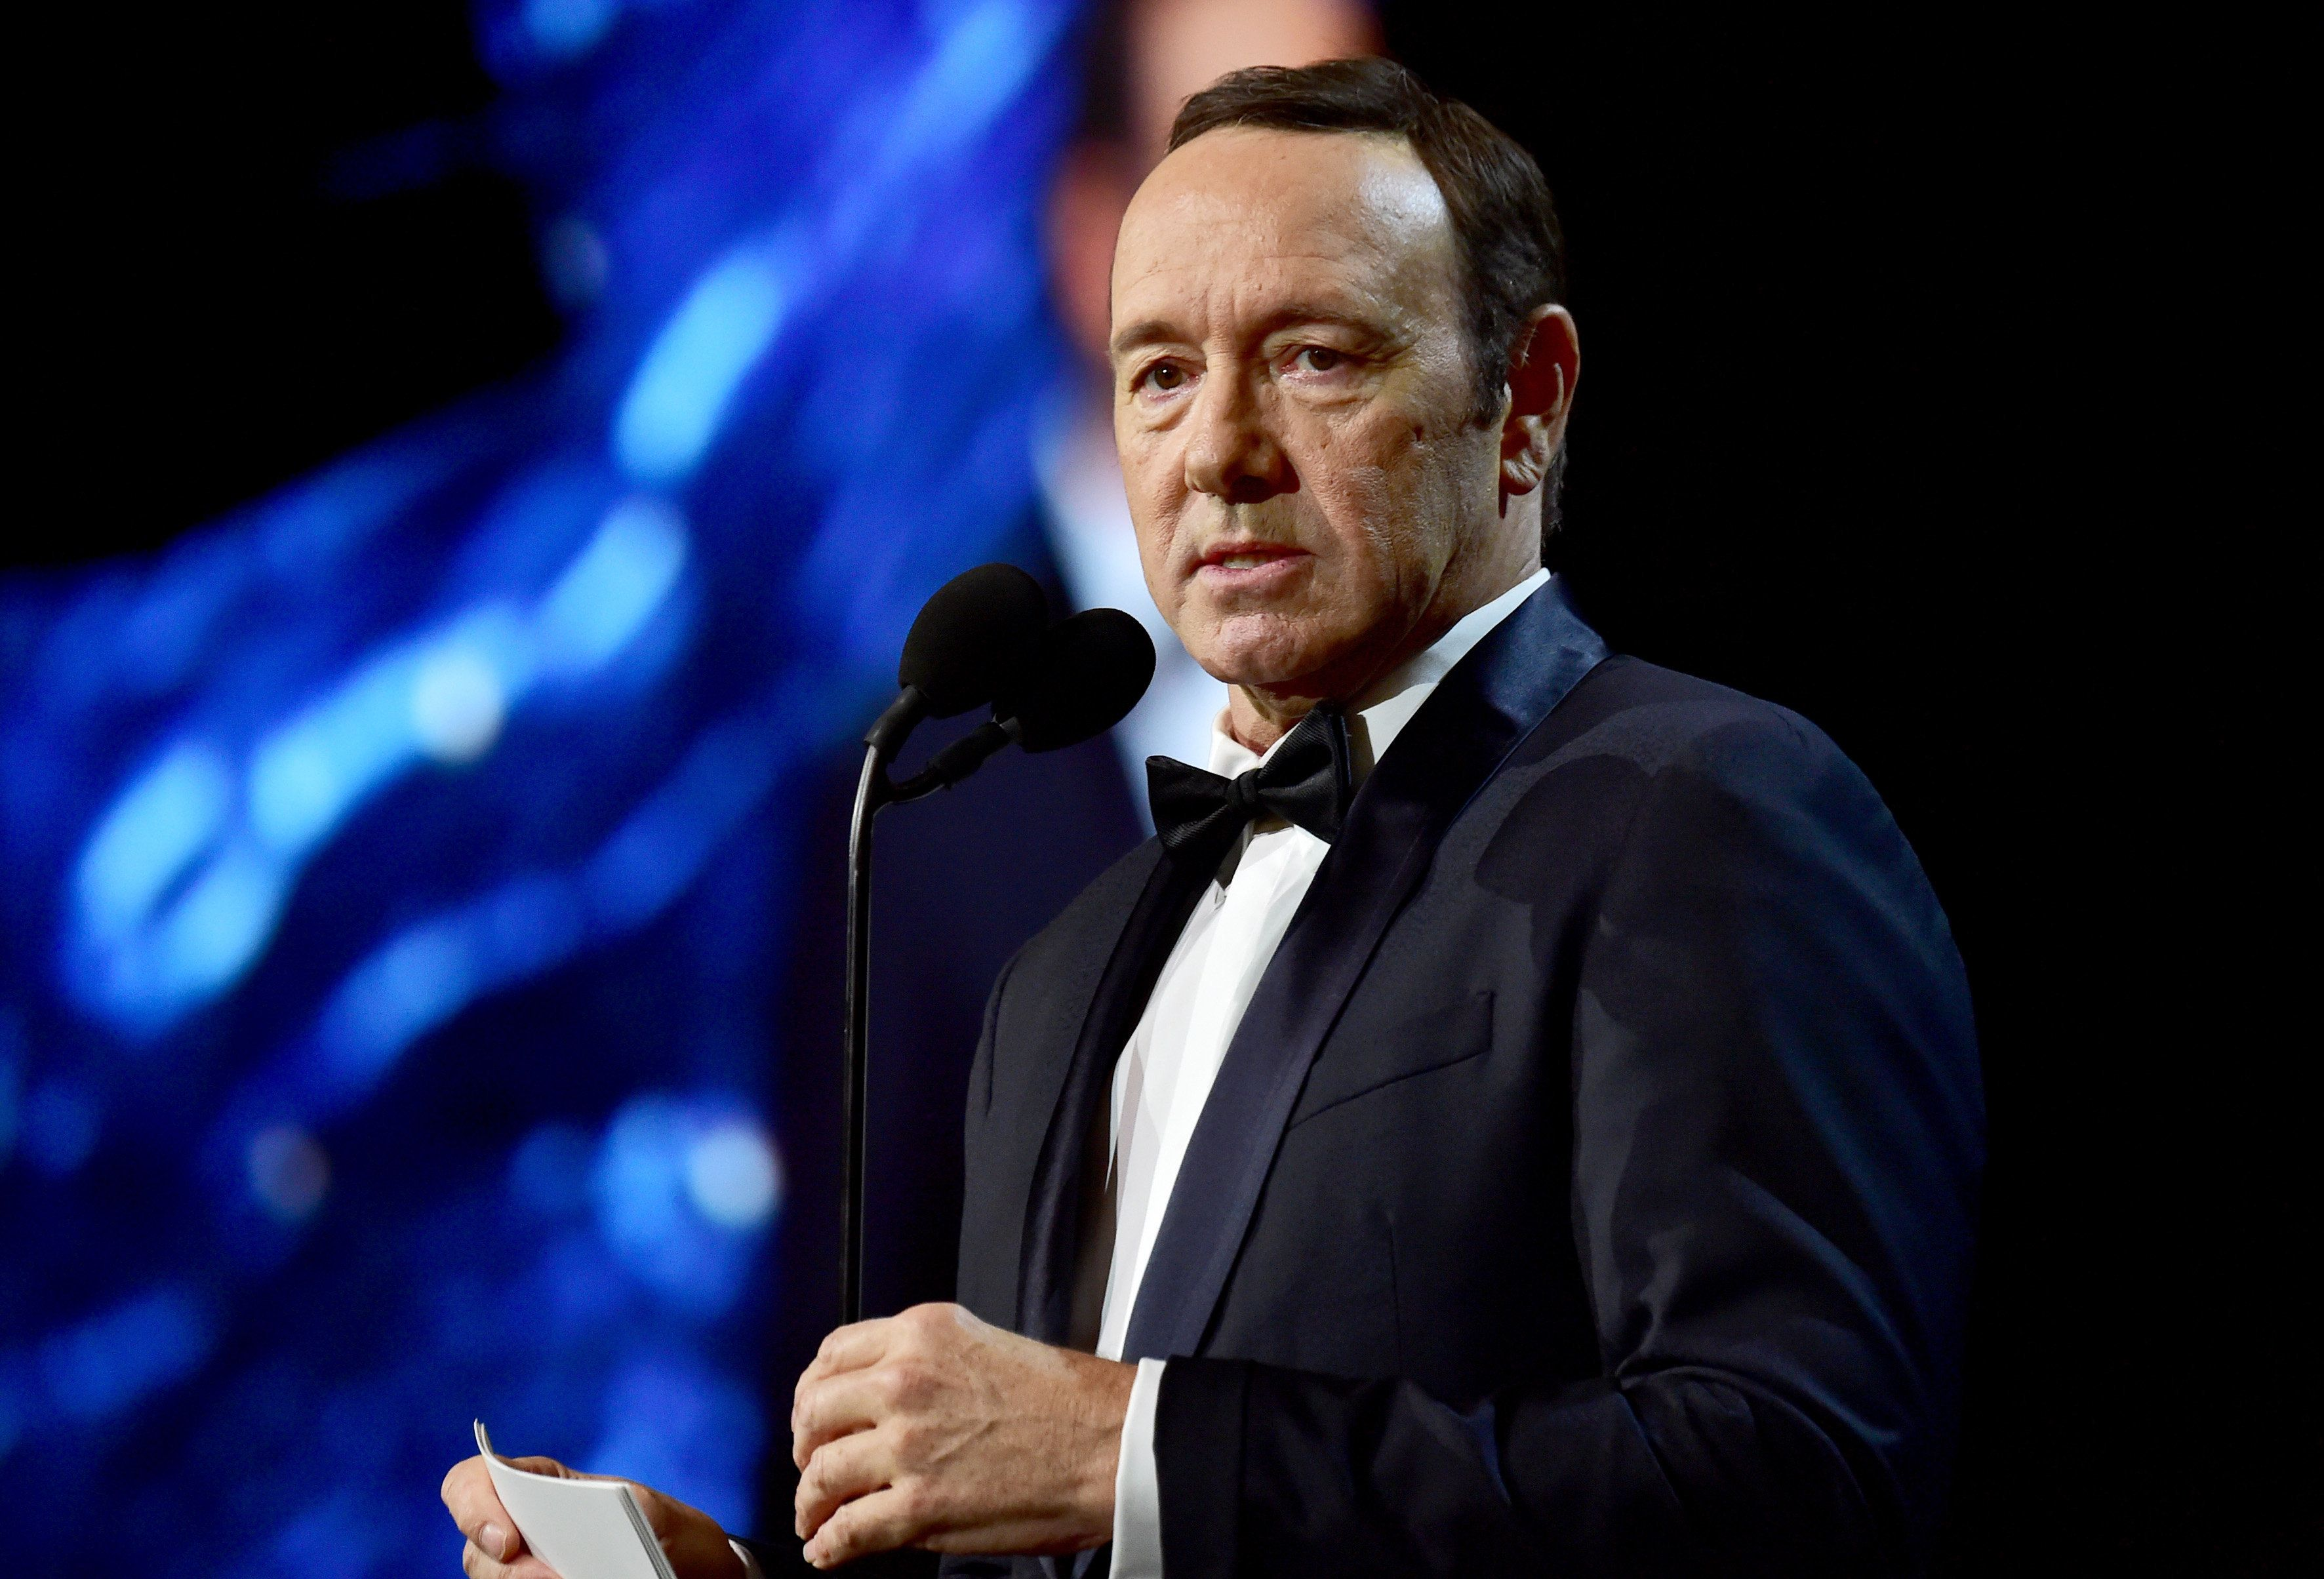 Kevin Spacey Accused Of Sexual Assault By 3 More